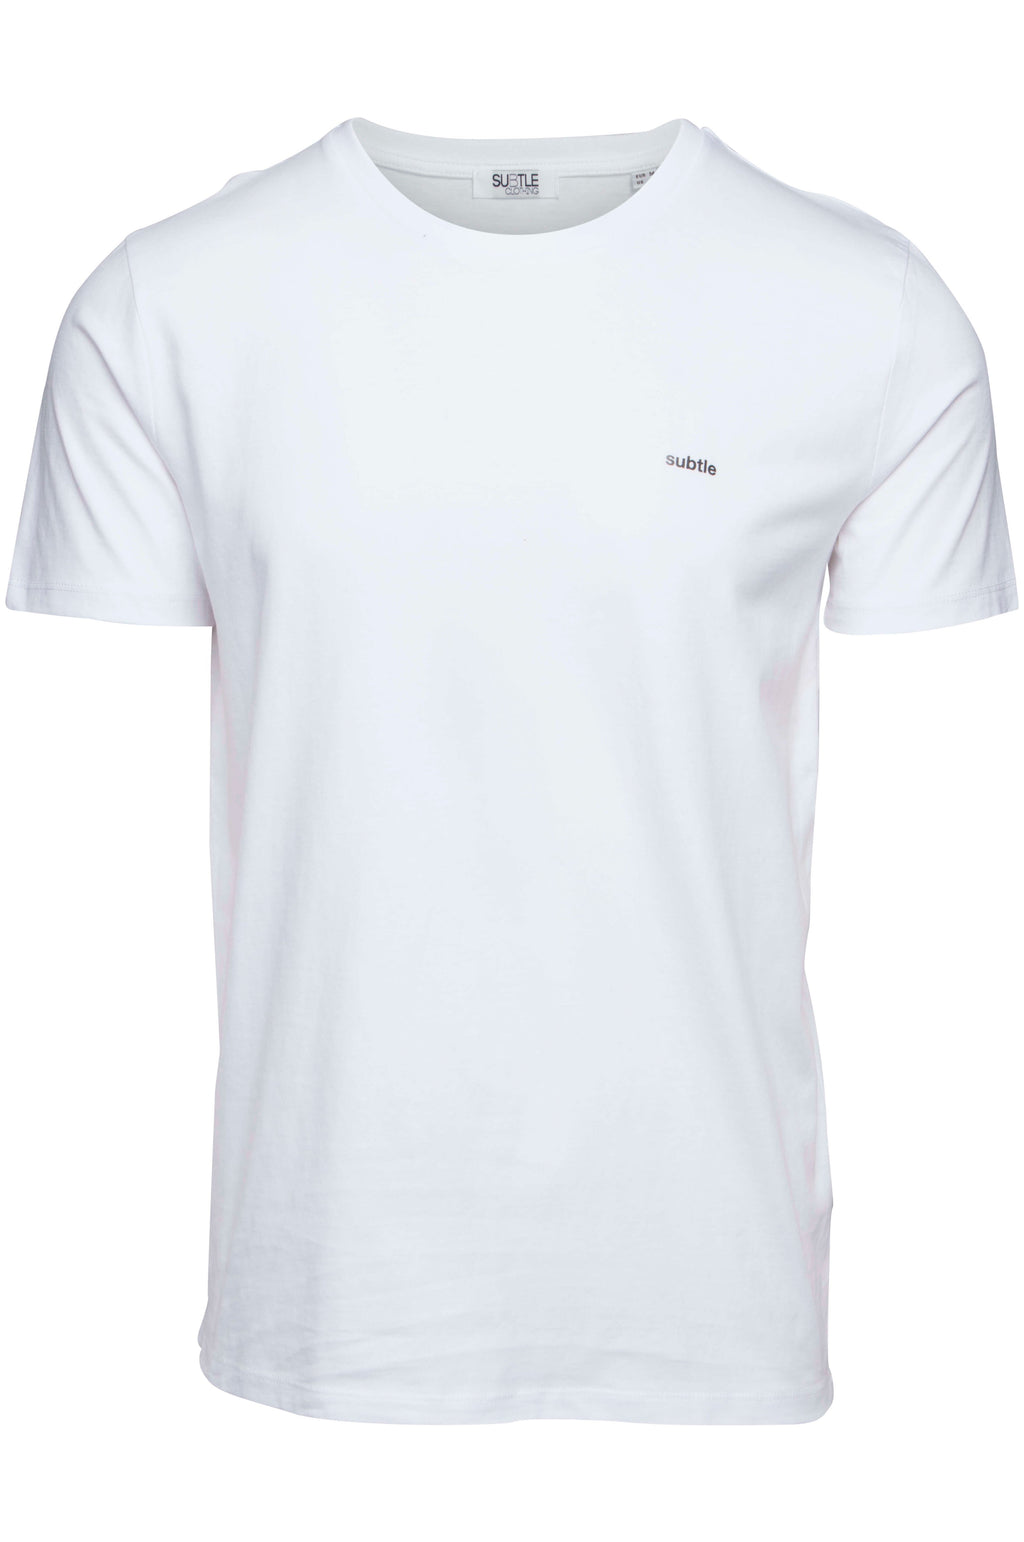 Organic White Classic T-shirt made by subtledk